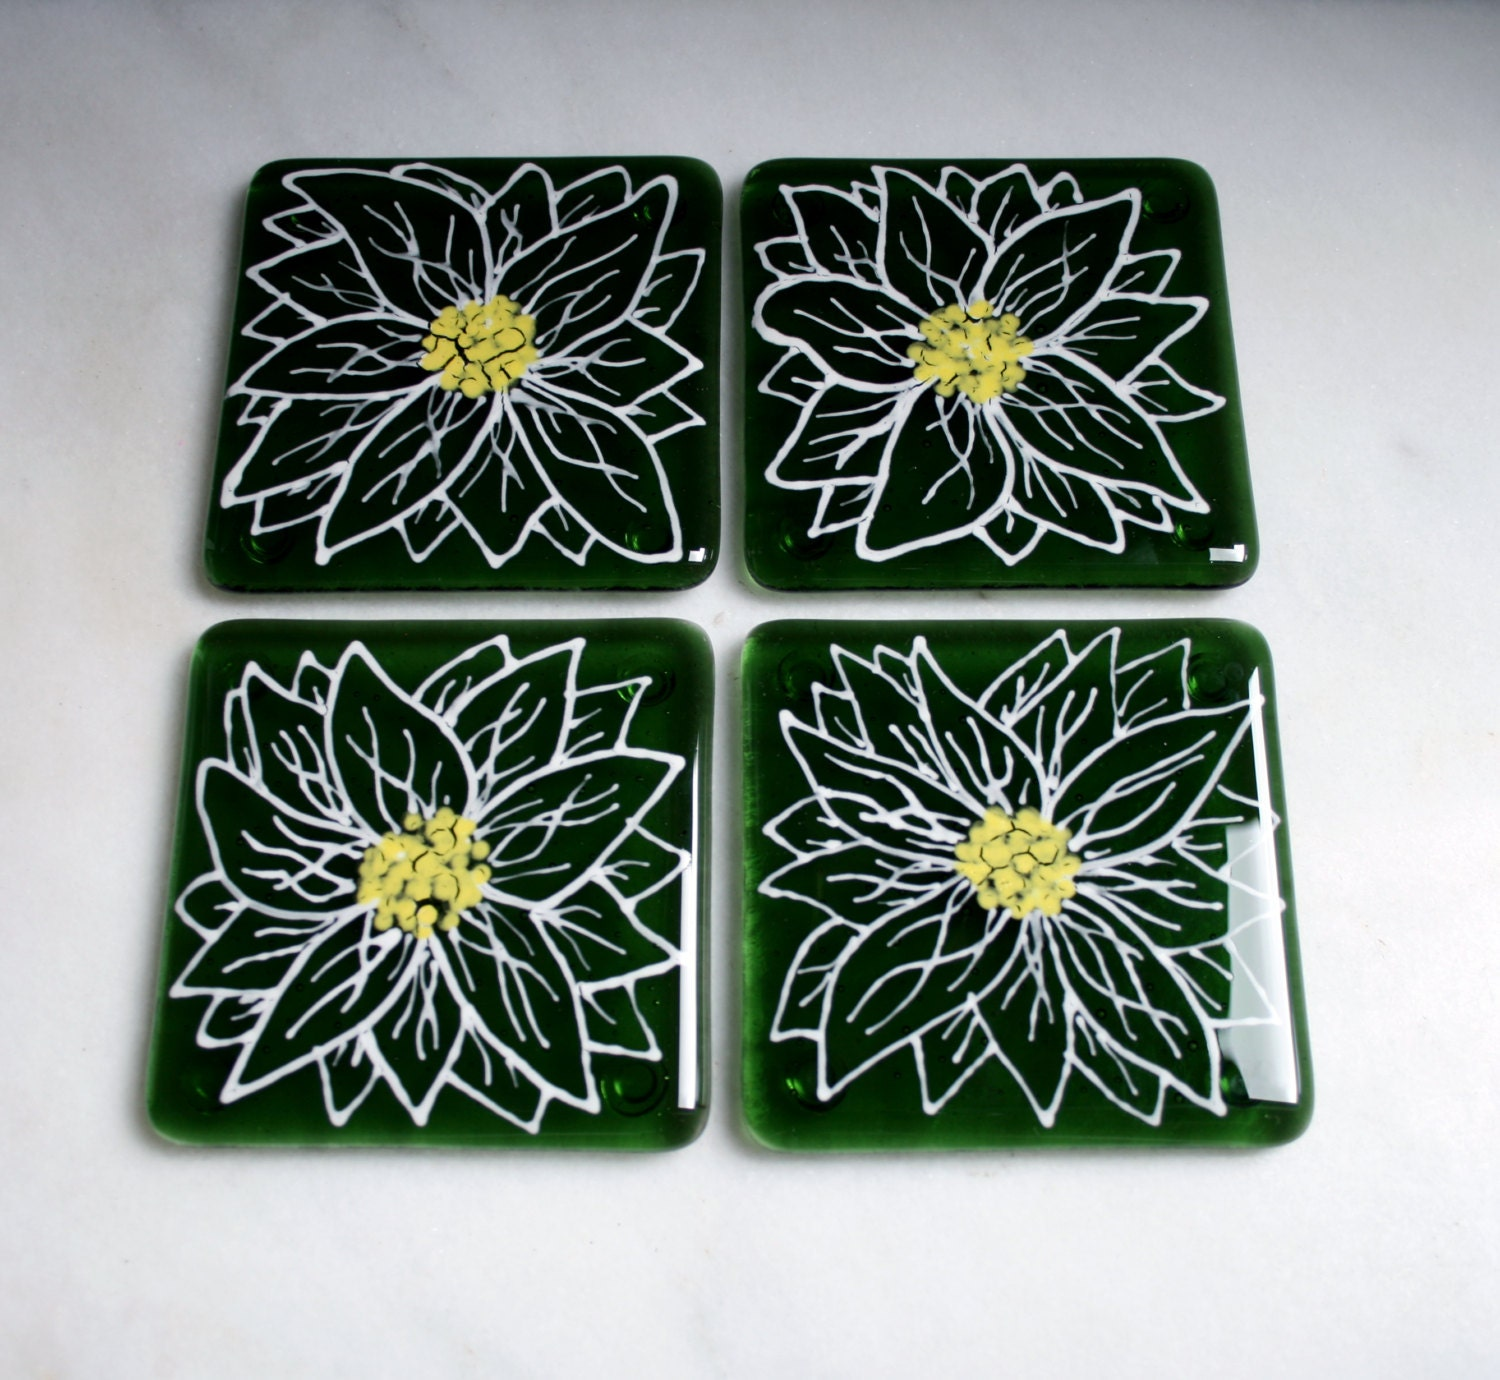 kiln fused glass coasters 39 daisy 39 large white. Black Bedroom Furniture Sets. Home Design Ideas